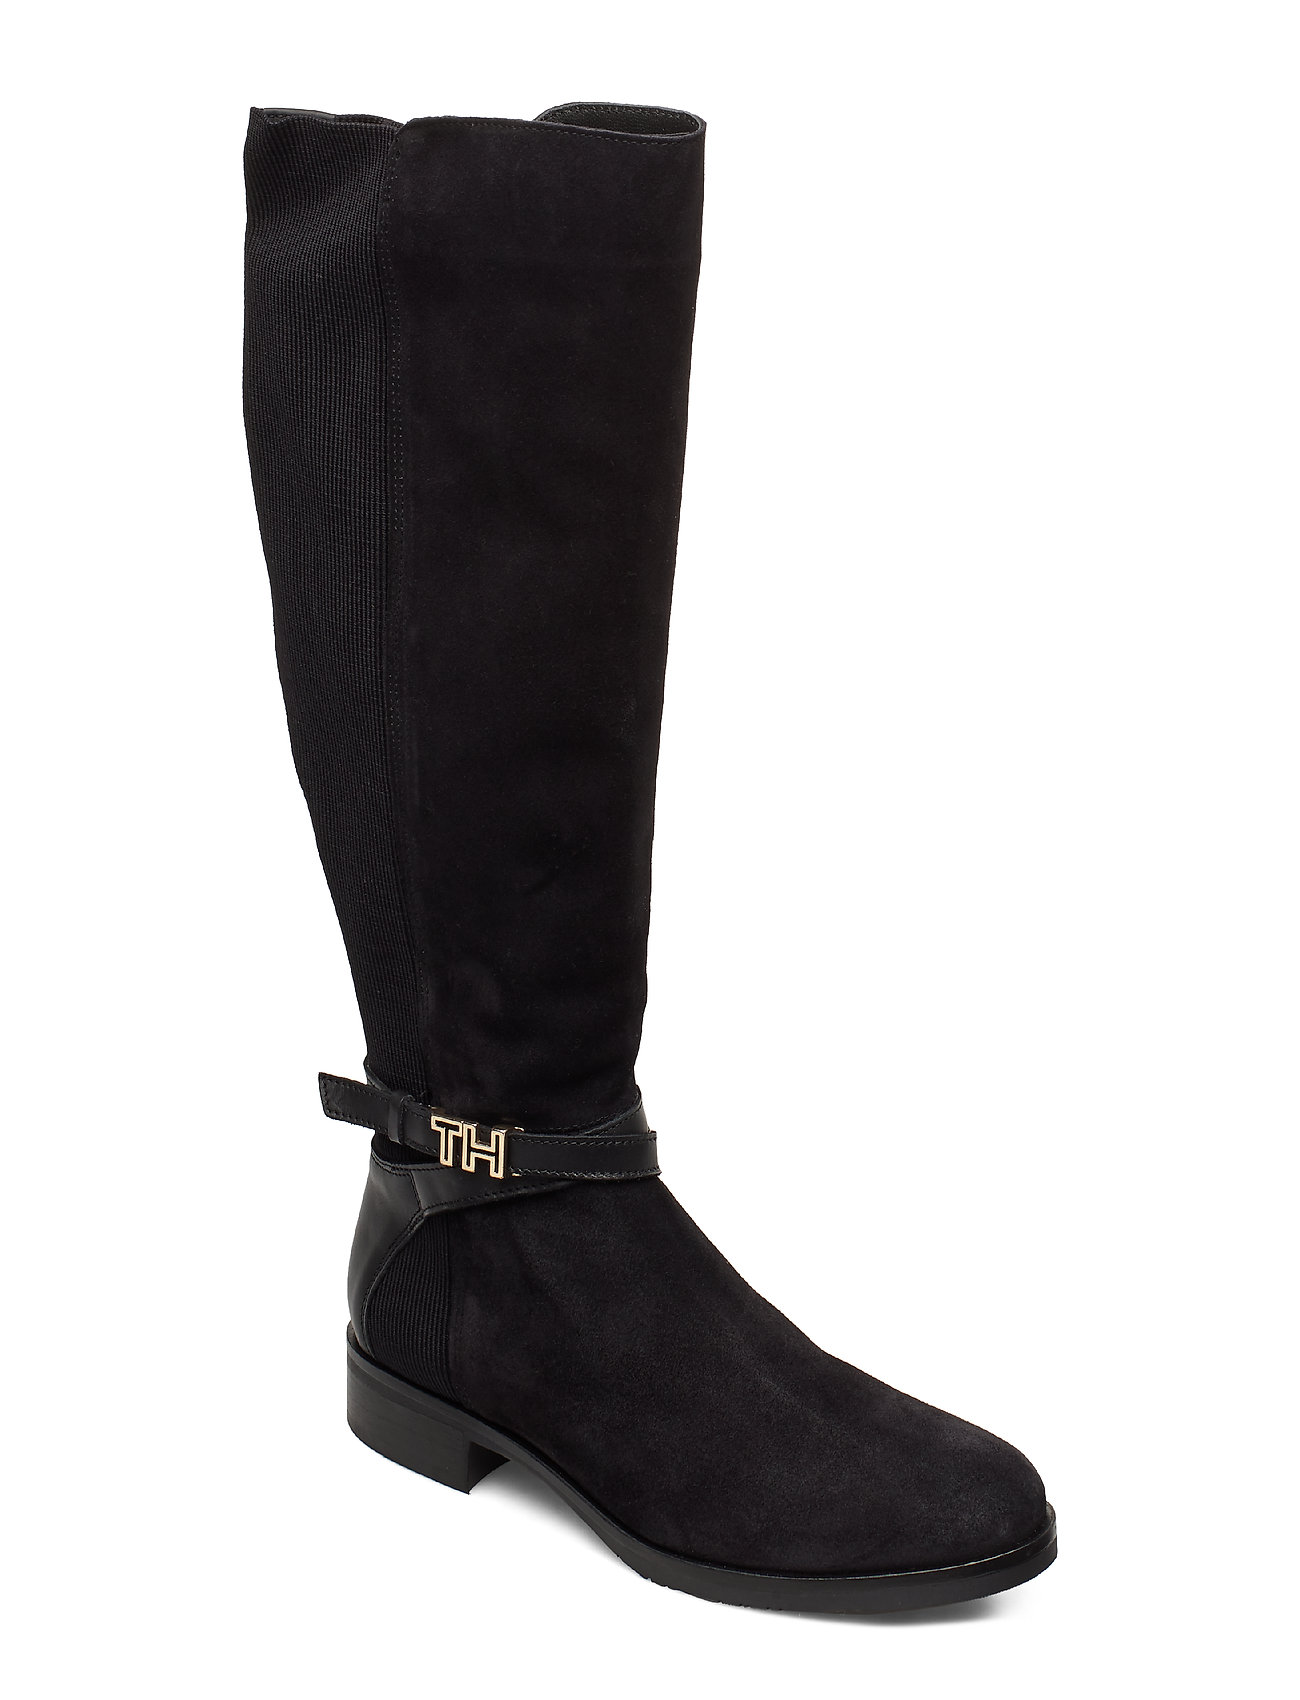 Tommy Hilfiger TH HARDWARE MIX LONGBOOT - BLACK